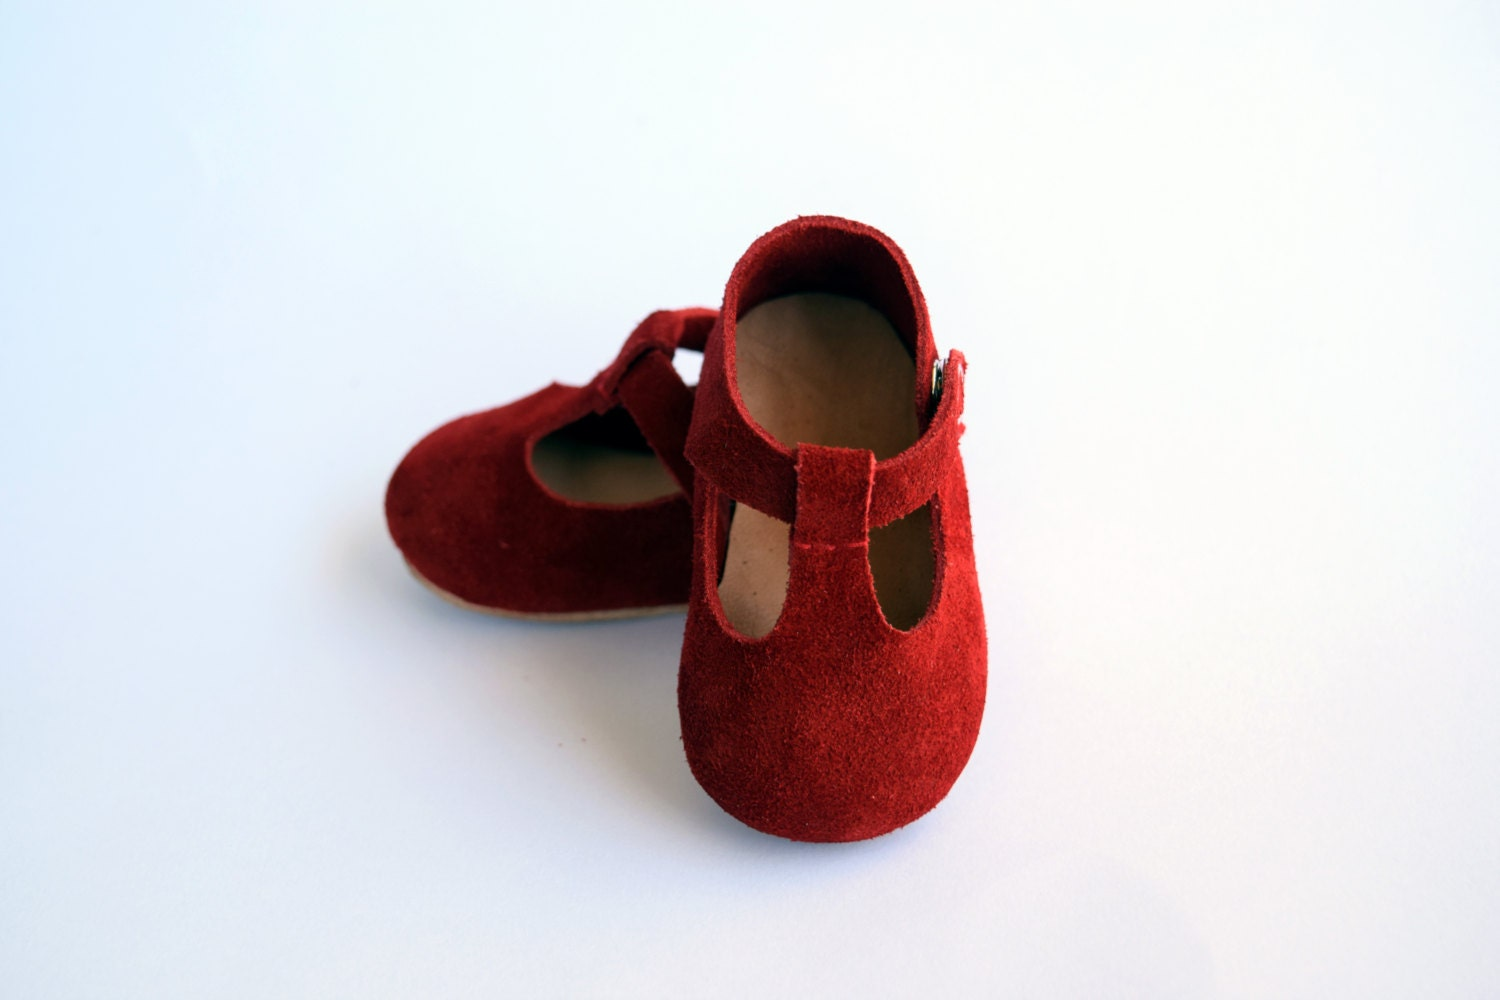 Black newborn sandals - Baby Shoes Red Baby Moccasins Leather Baby Girl Mary Jane T Strap Infant